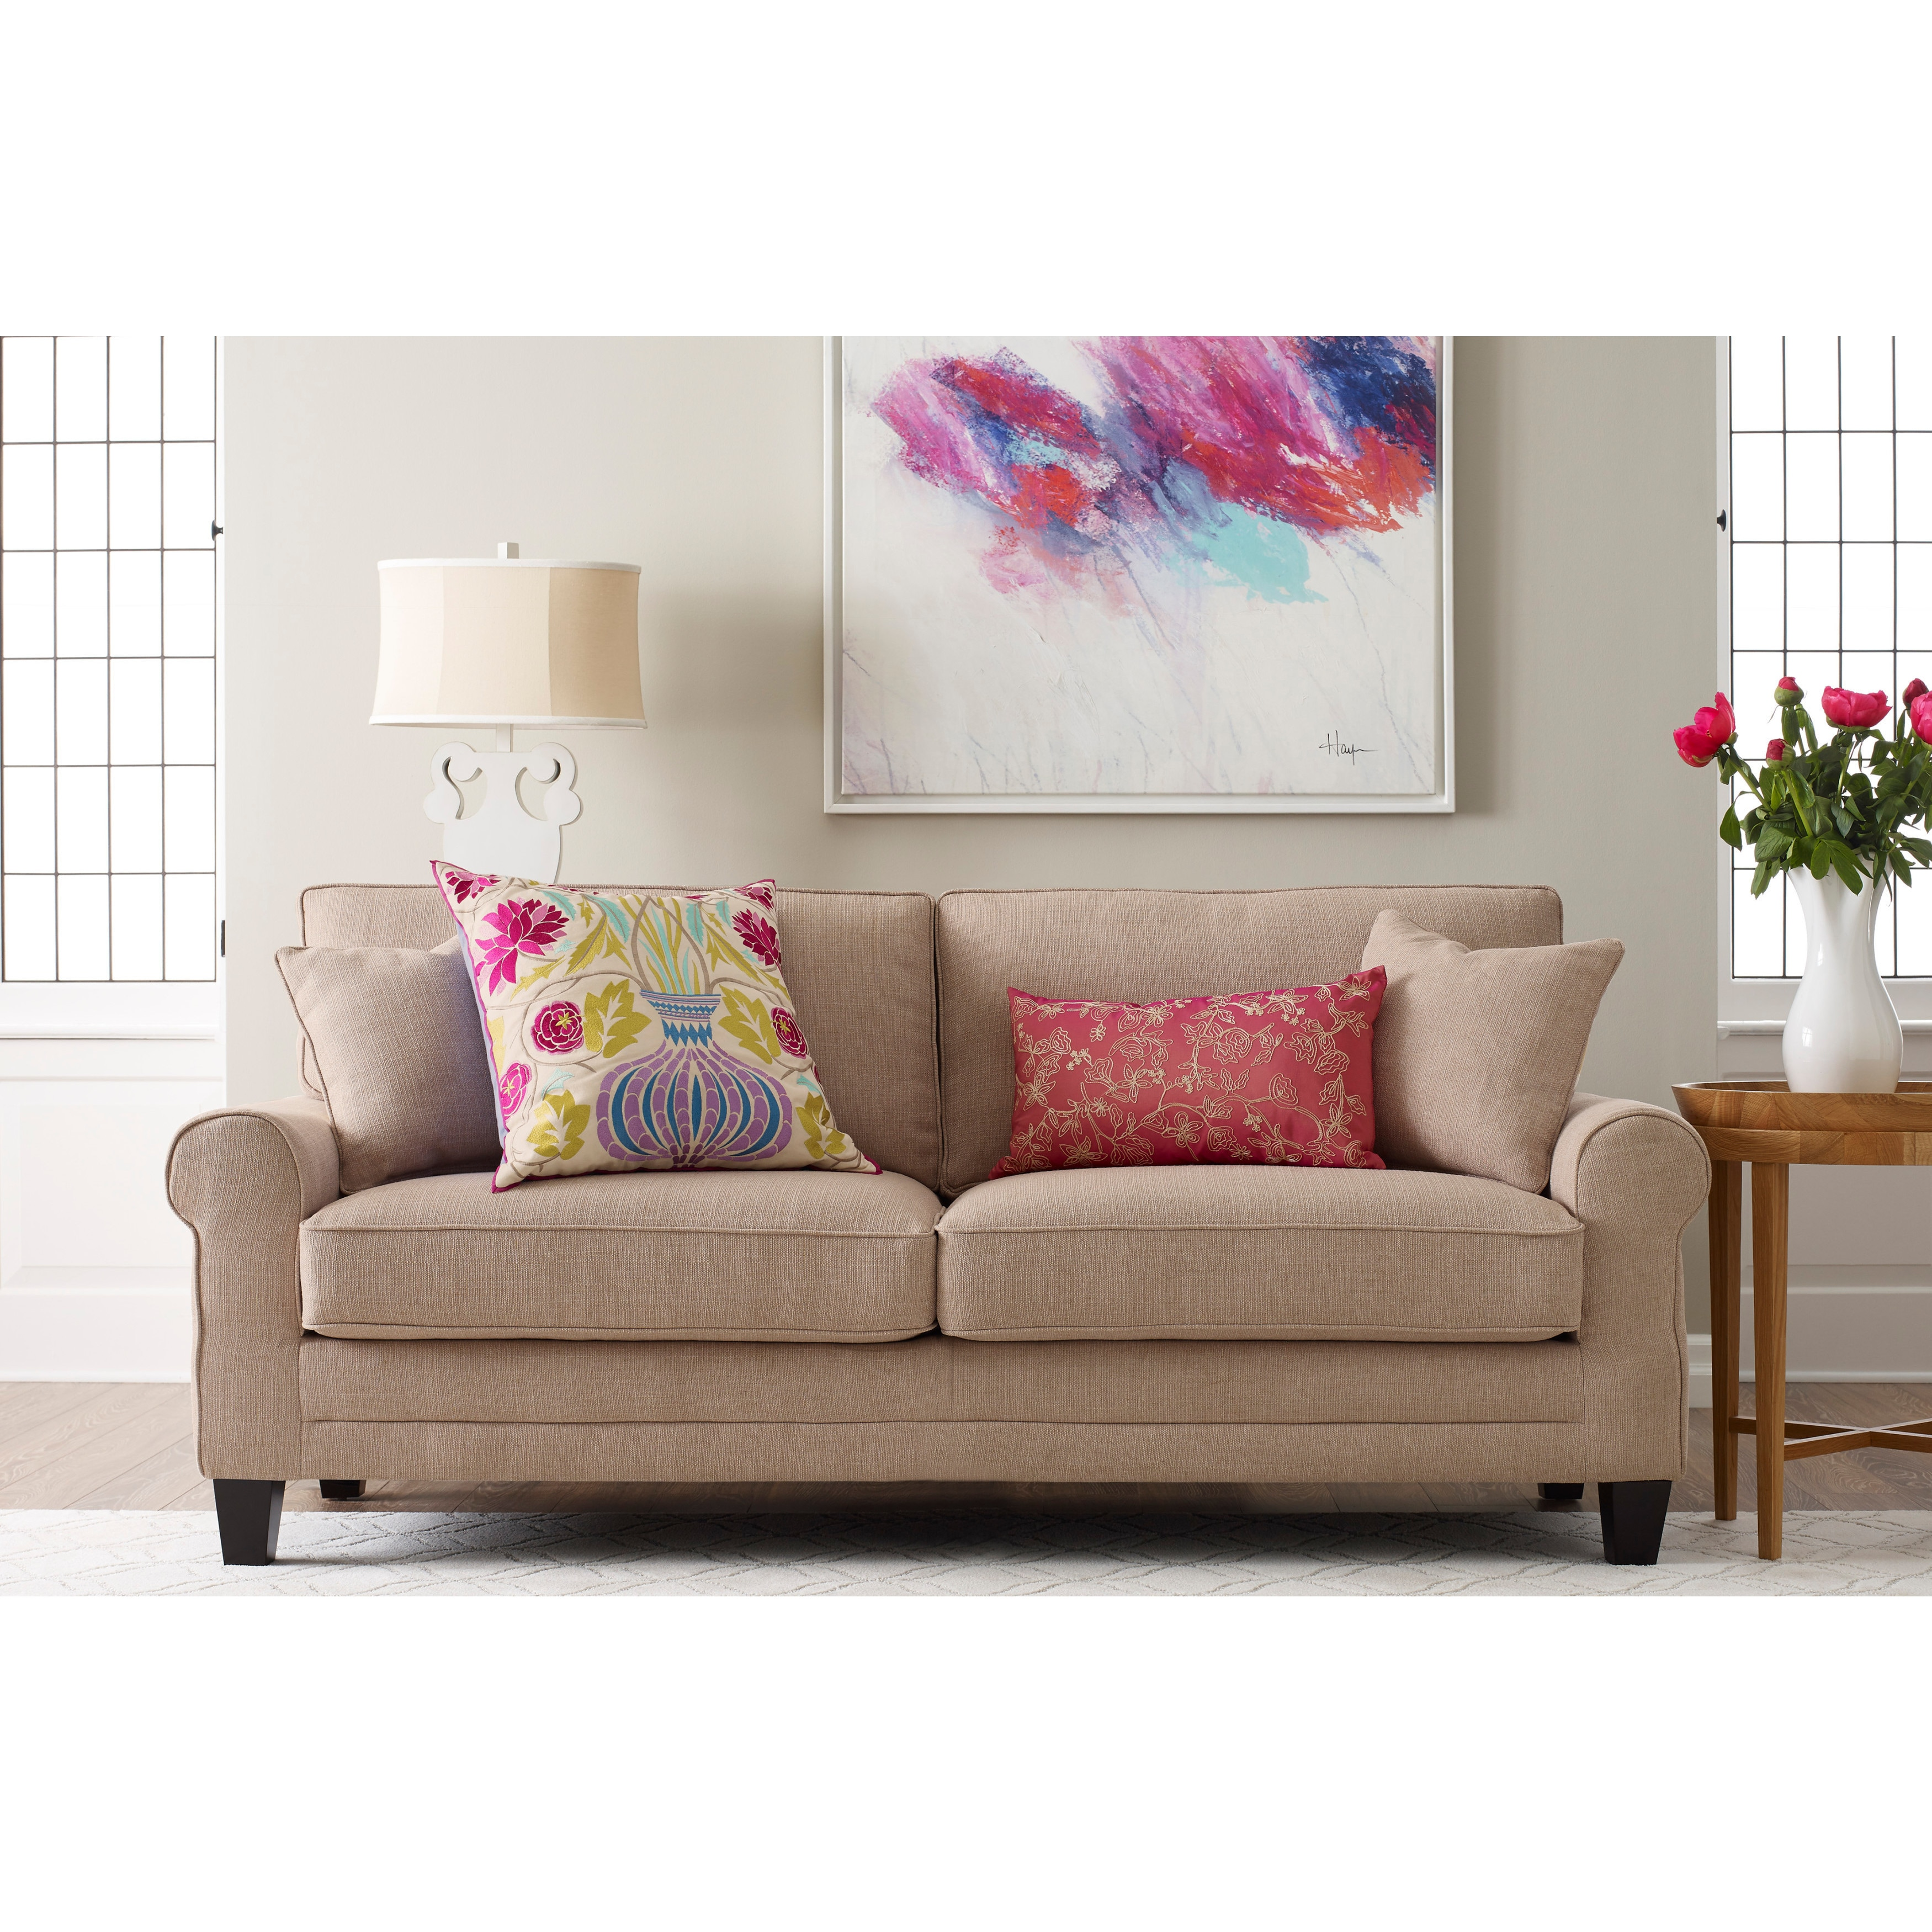 Charmant Shop Serta Copenhagen Microfiber 73 Inch Deep Seating Sofa   Free Shipping  Today   Overstock.com   16796079